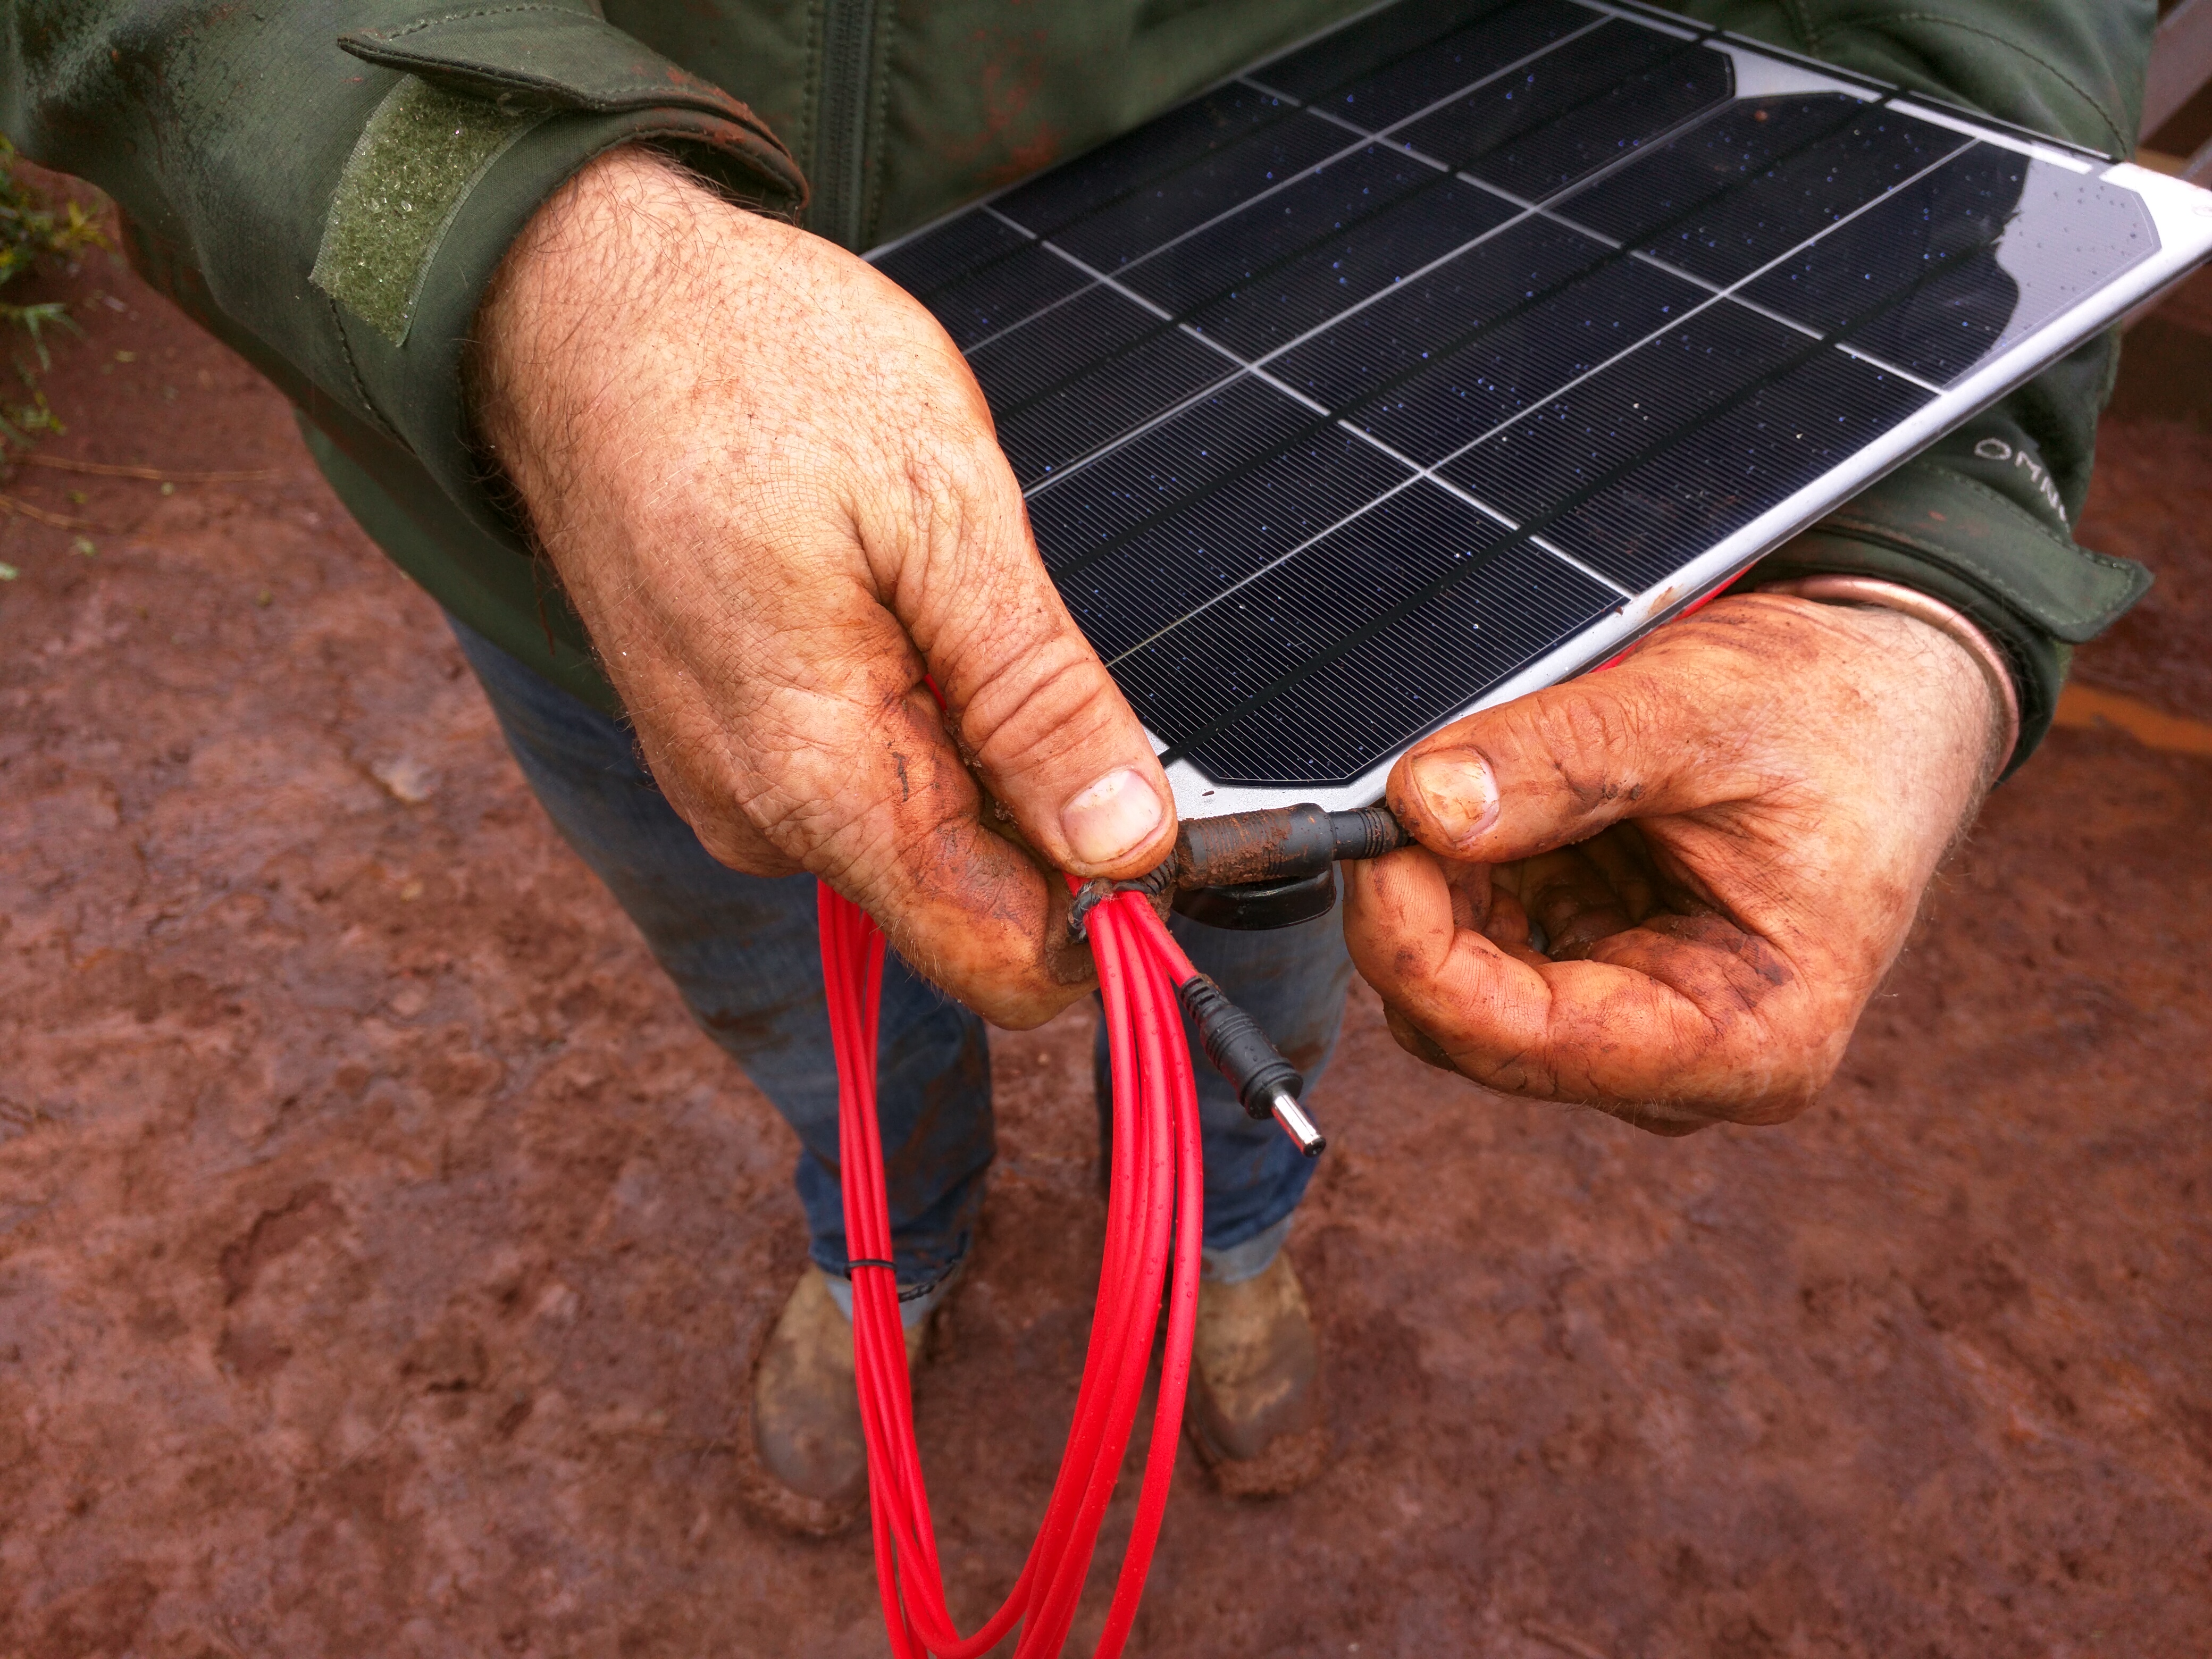 A sample of the solar panels and cables used.